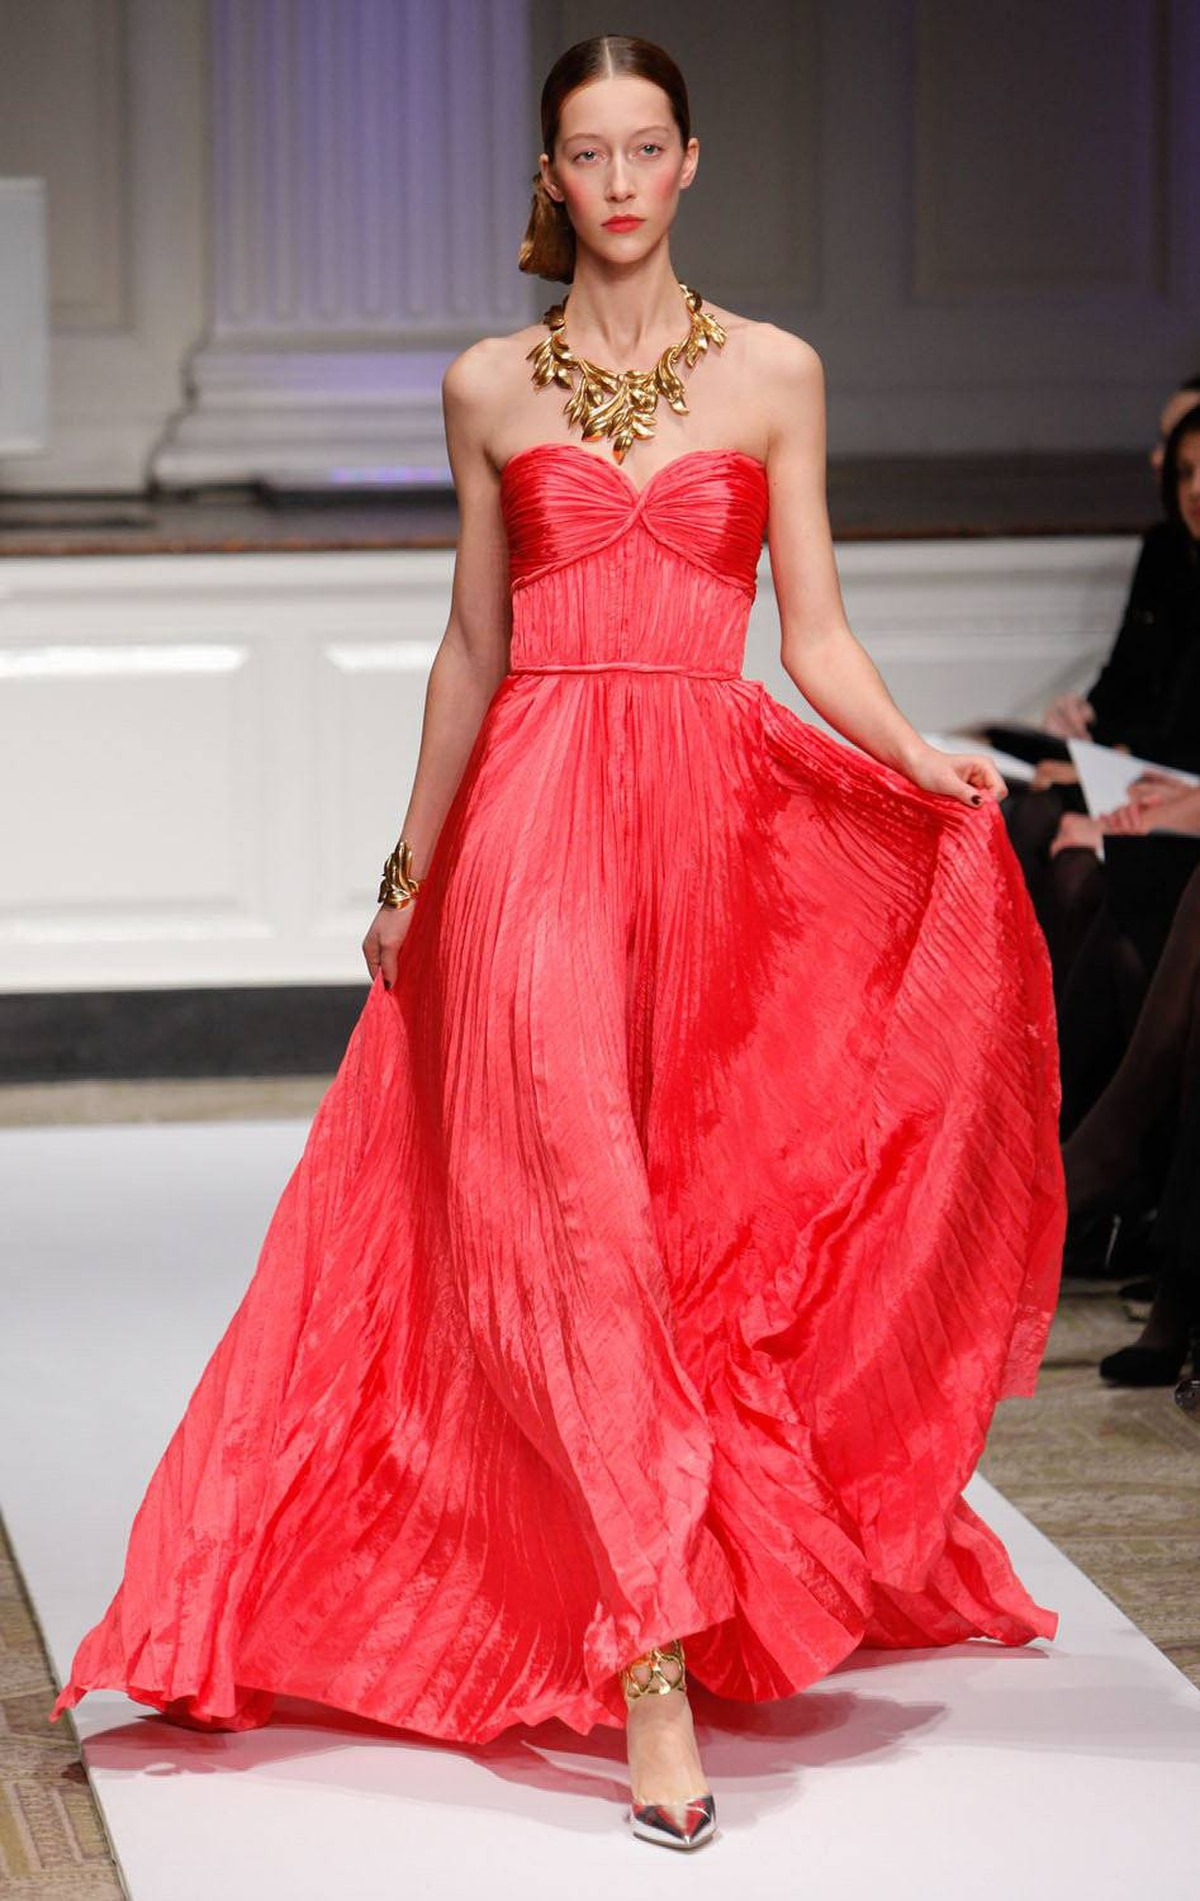 You can never go wrong with a knockout red dress. Especially if it's by Oscar de la Renta.